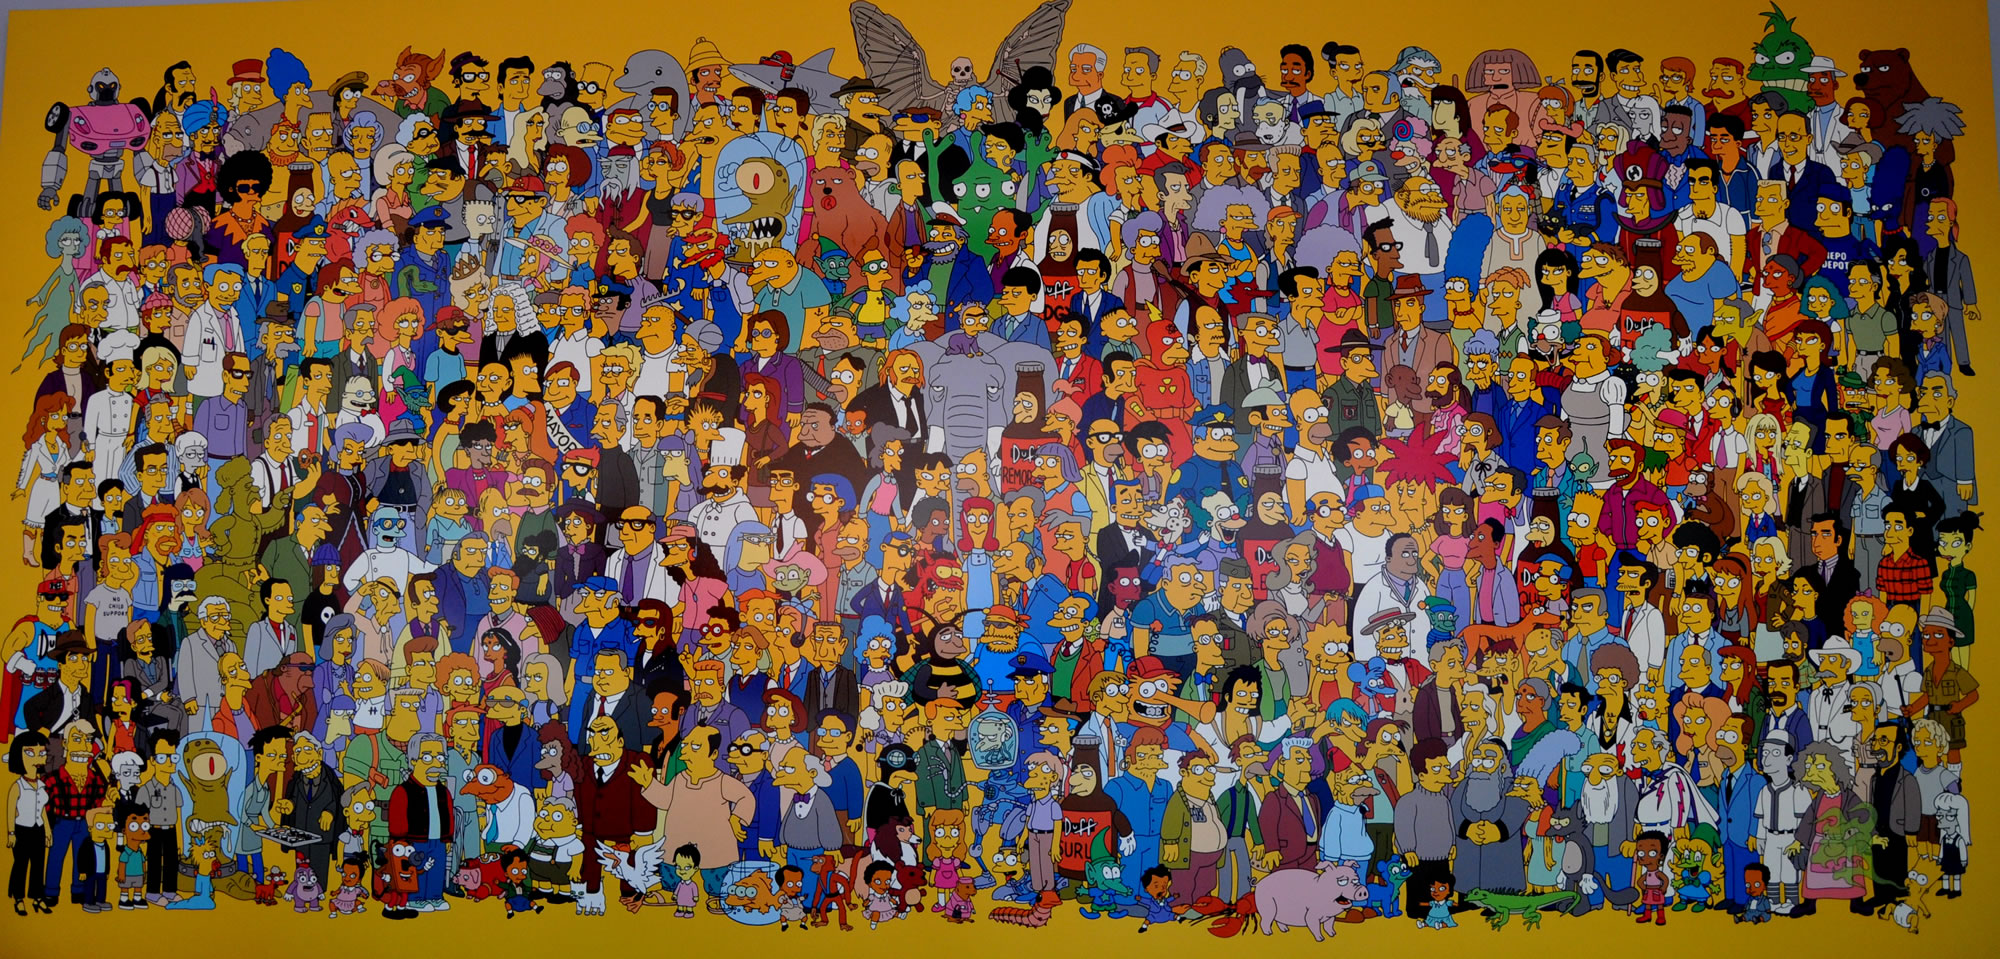 an analysis of the characters in the simpsons a television show